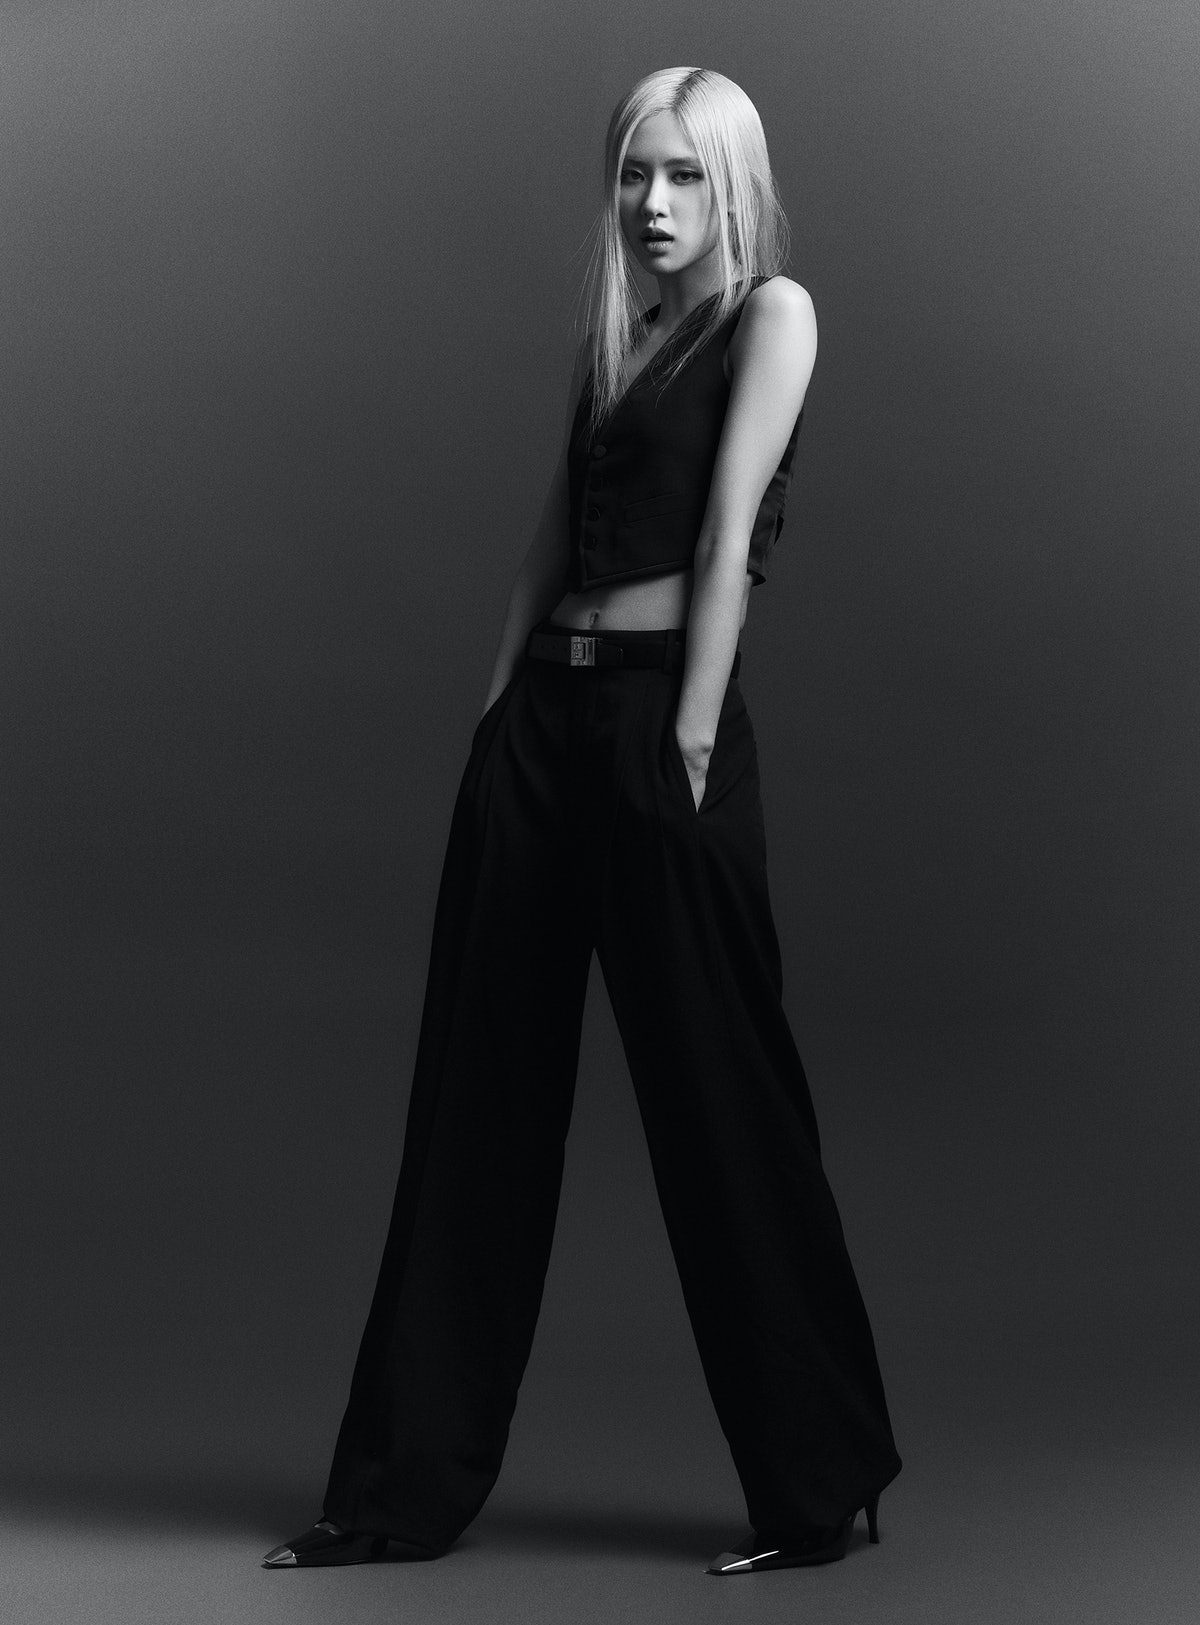 Rosé of Blackpink in Saint Laurent by Anthony Vaccarello